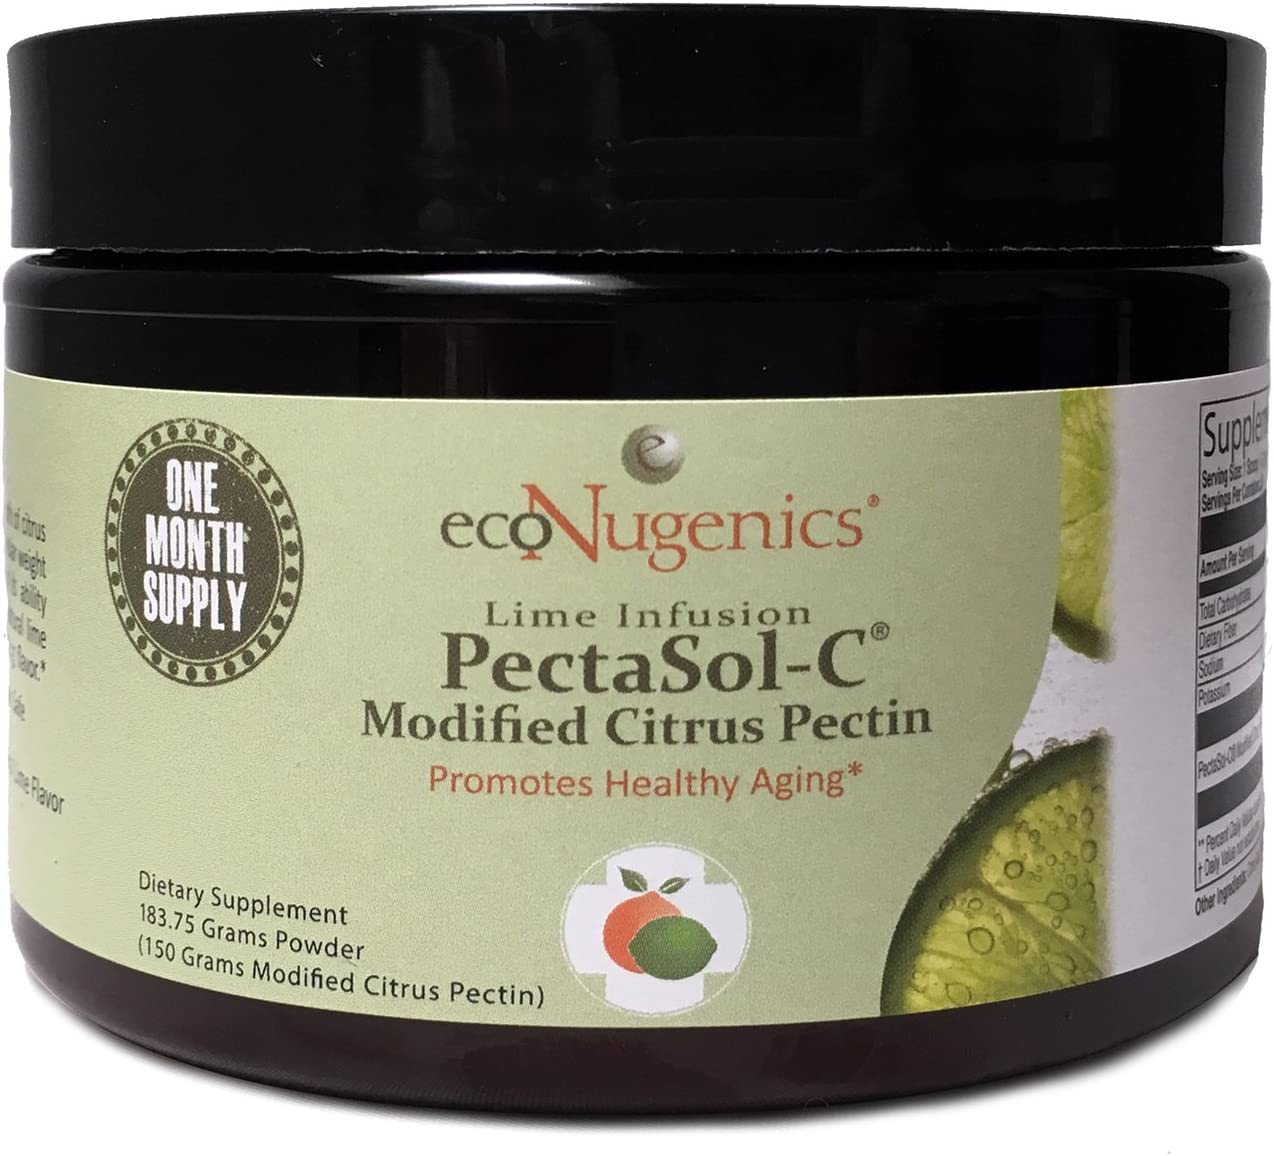 ecoNugenics PectaSol-C Modified Citrus Pectin Cellular Health and Immune System Supplement - Lime Infusion Powder 183.75 Grams - Maintain Healthy Galectin-3 Levels - Cardiovascular Support